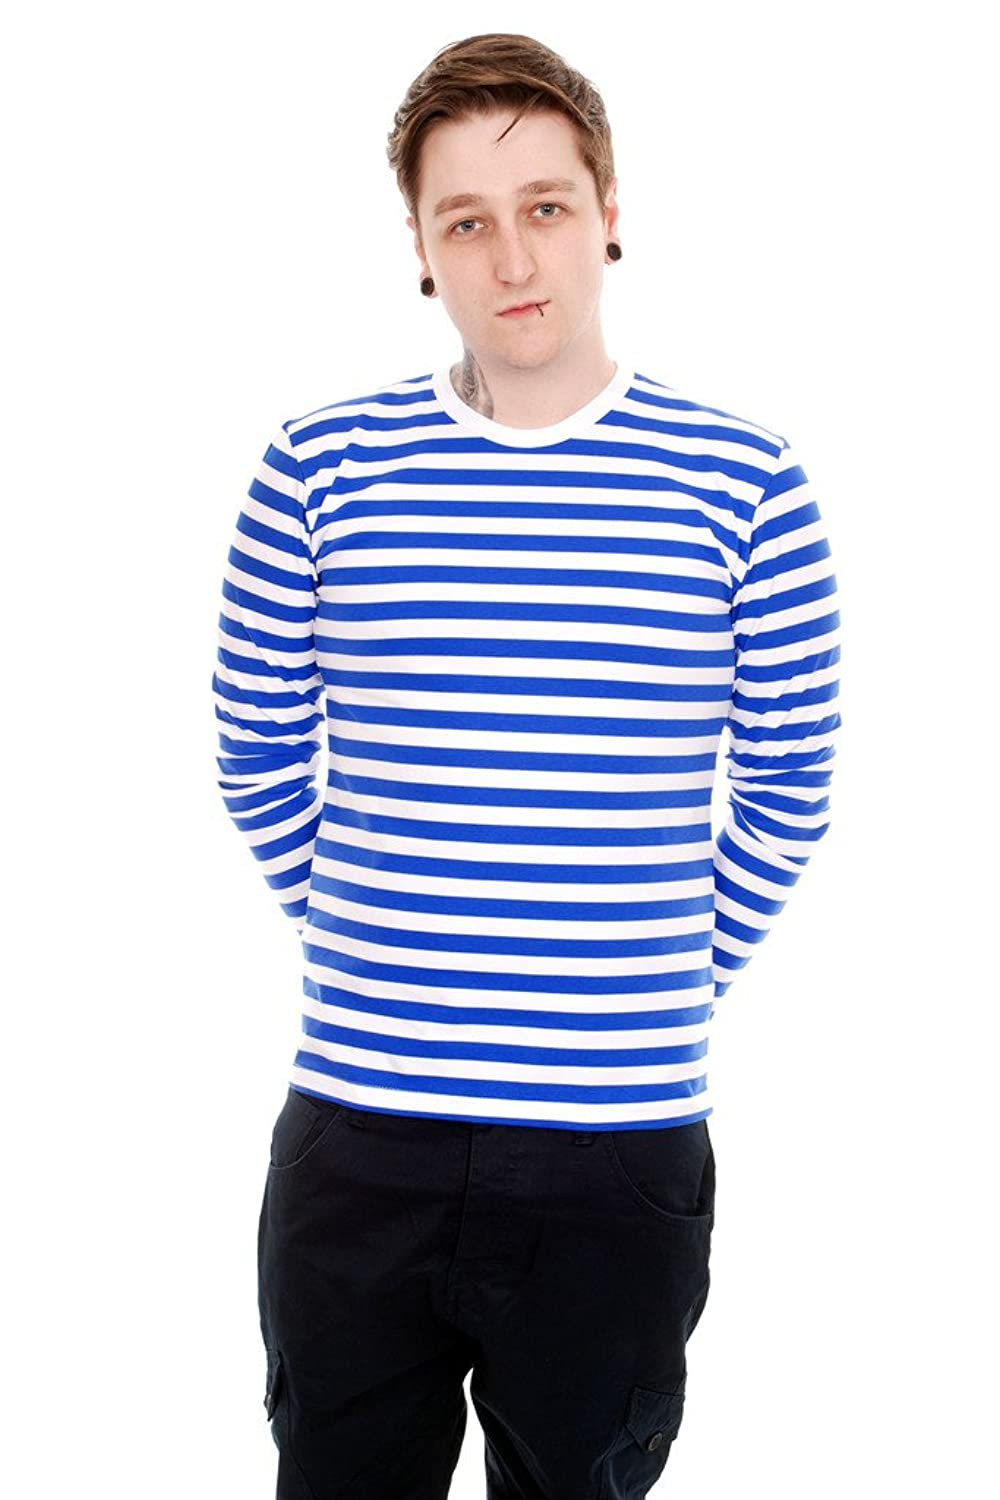 1930s Style Mens Shirts  Royal & White Striped Long Sleeve T Shirt $29.95 AT vintagedancer.com